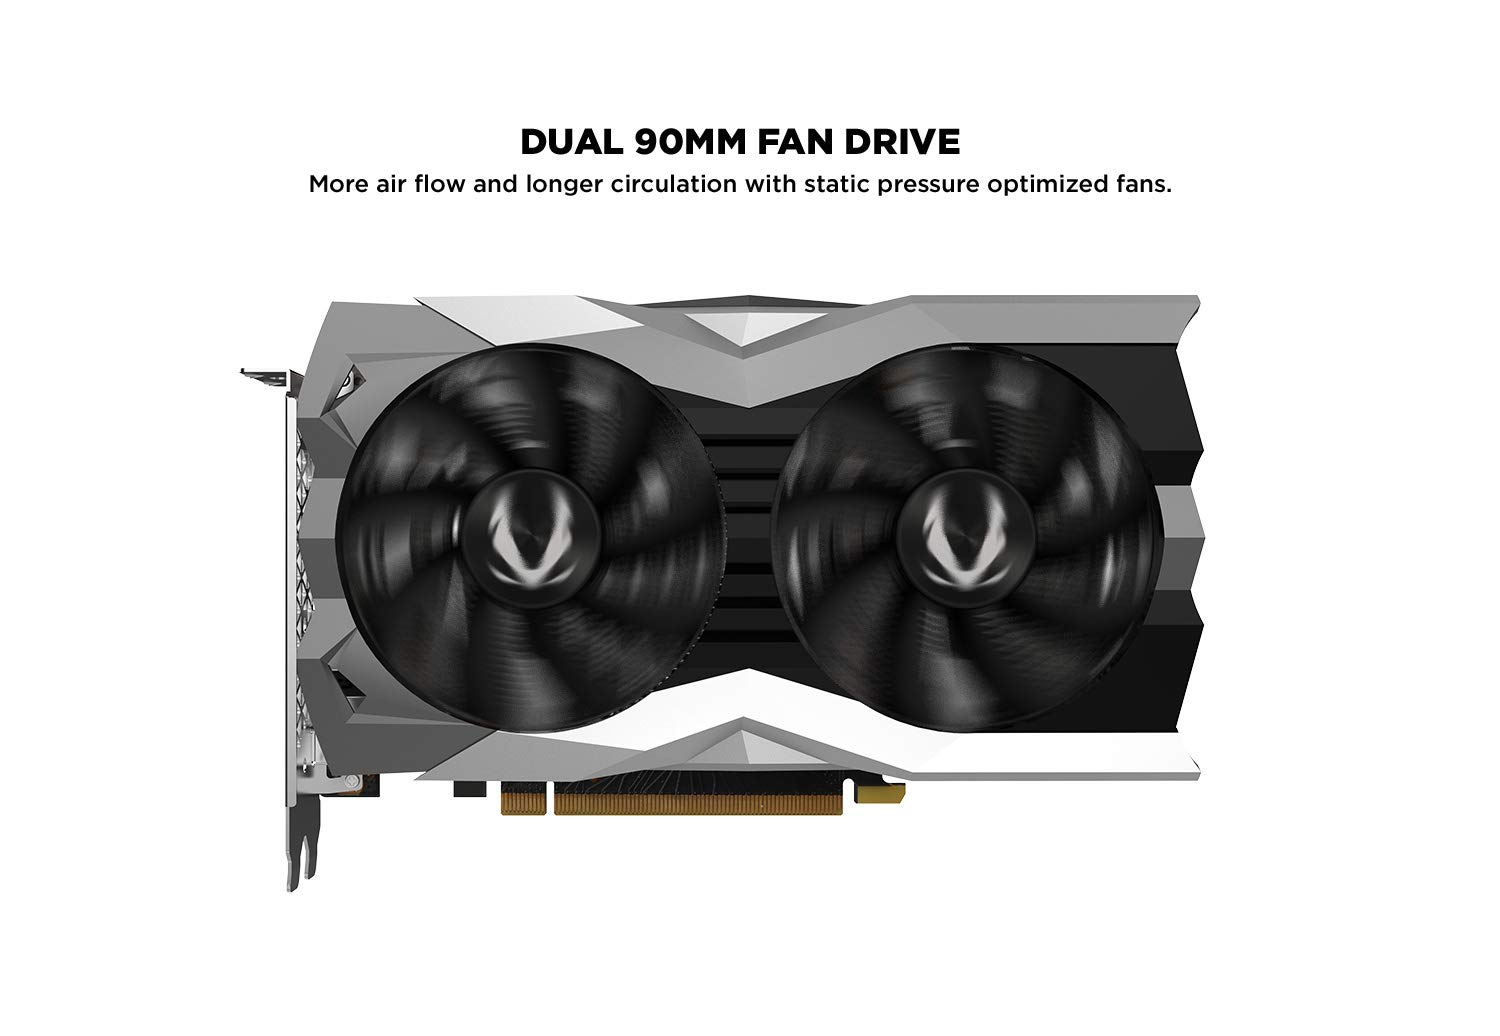 ZOTAC Gaming GeForce RTX 2060 Twin Fan 6GB GDDR6 192-bit Gaming Graphics Card, Super Compact, IceStorm 2.0, ZT-T20600F-10M by ZOTAC (Image #4)